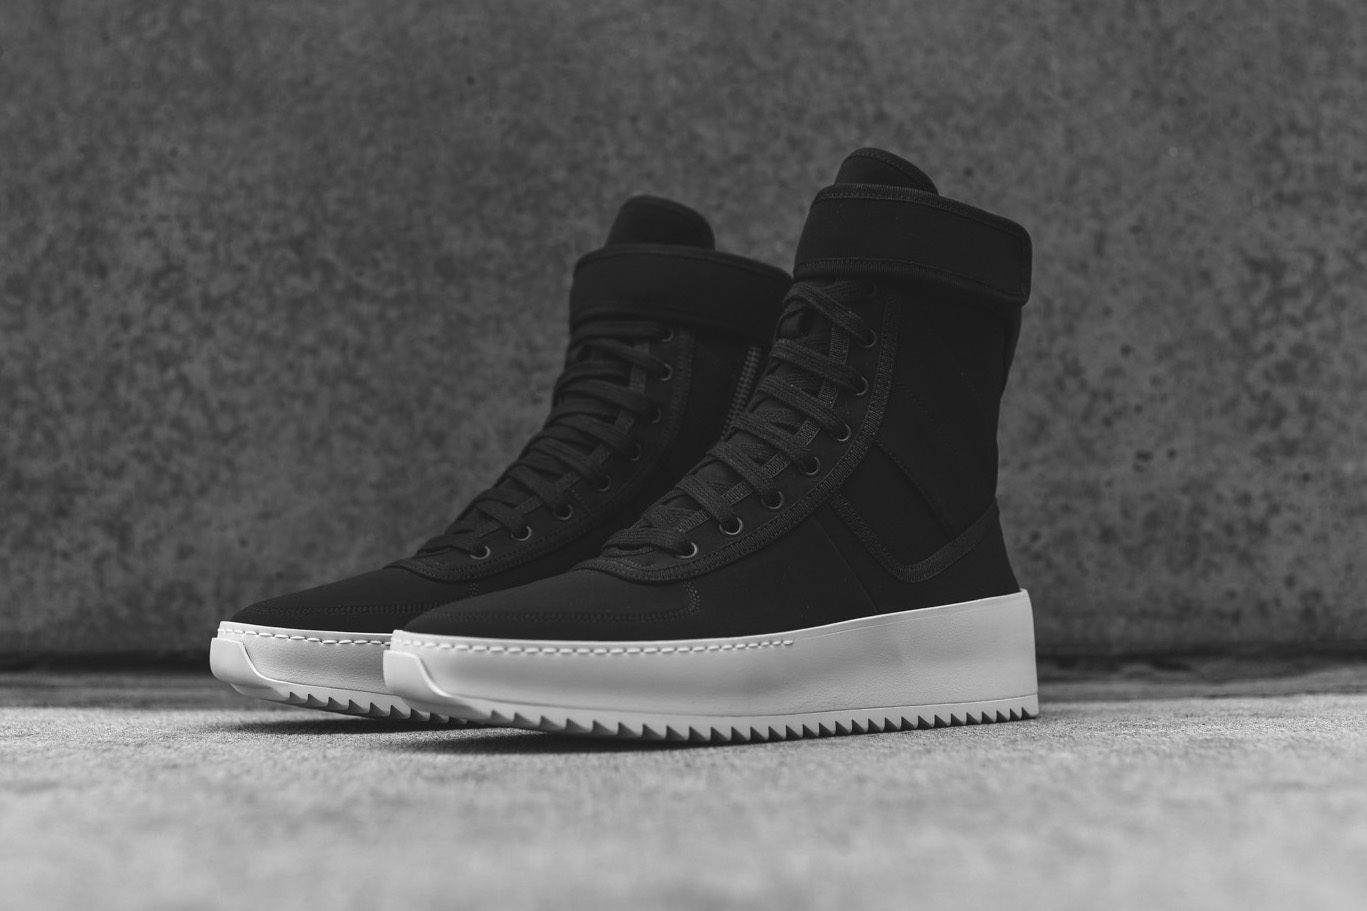 f2ae30246fe7 Fear of God Launches Its Military Sneaker in Black Nylon